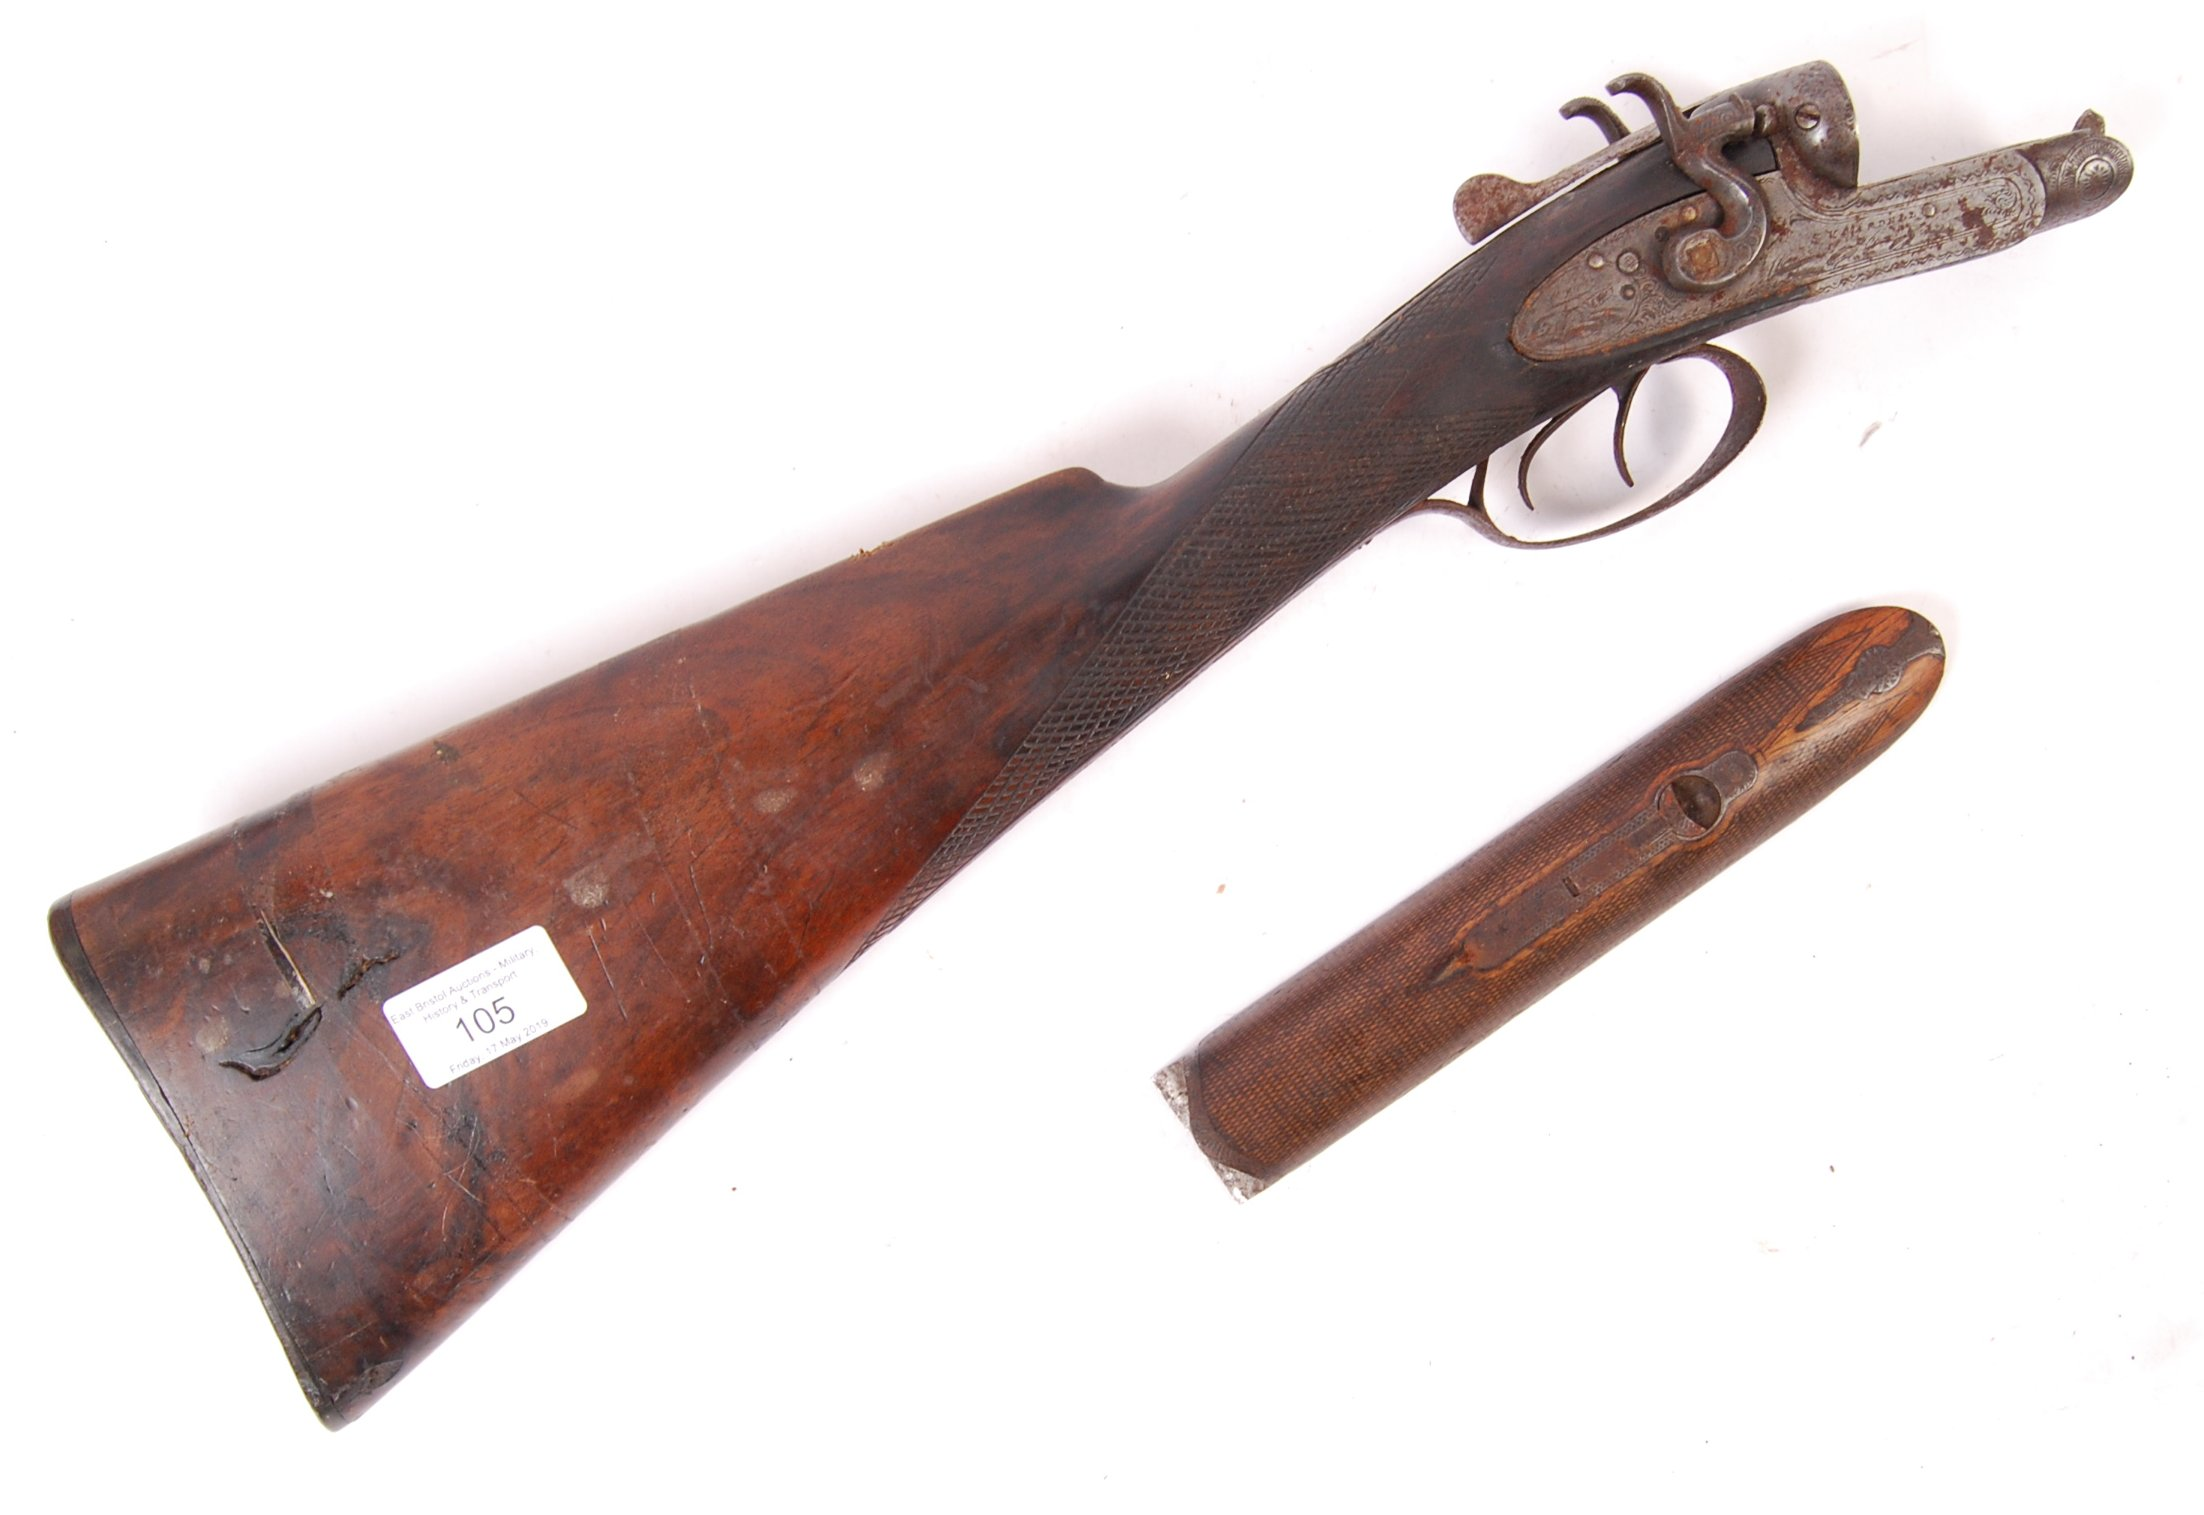 ANTIQUE 19TH CENTURY SV MARDELL SHOTGUN BUTT